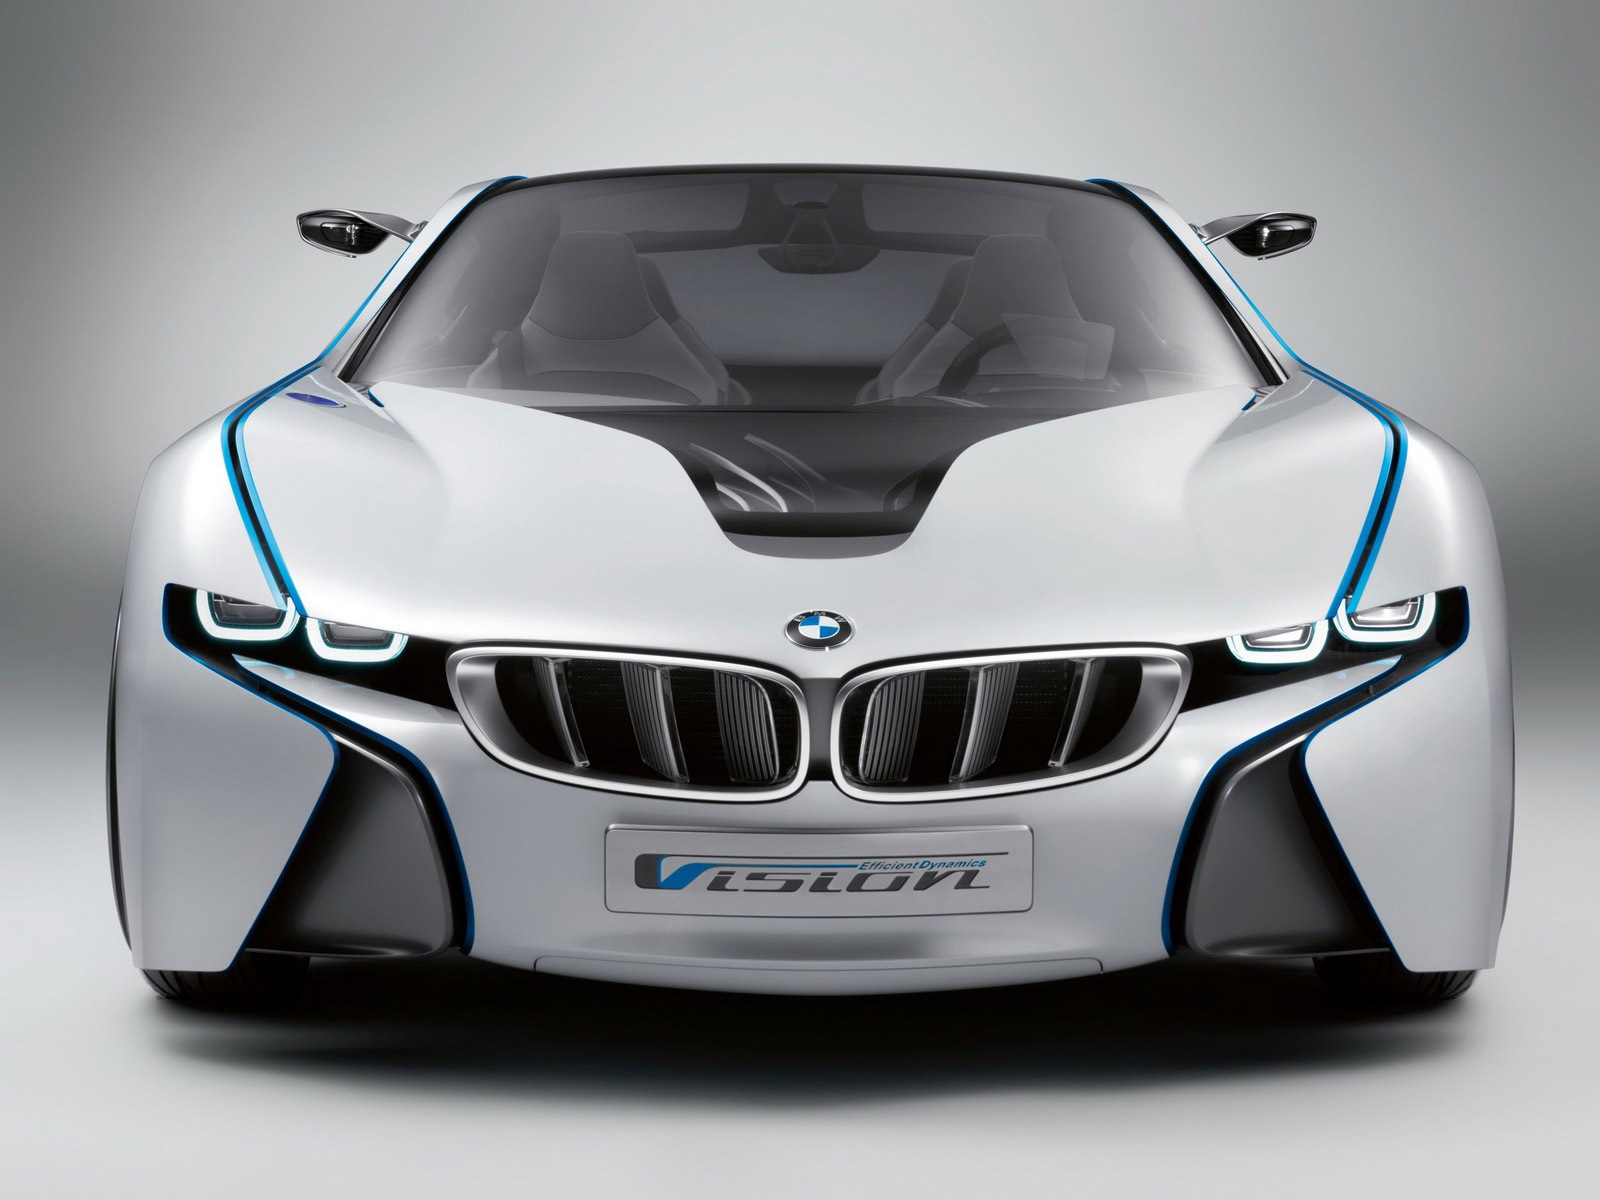 bmw-vision-efficientdynamics-01.jpg